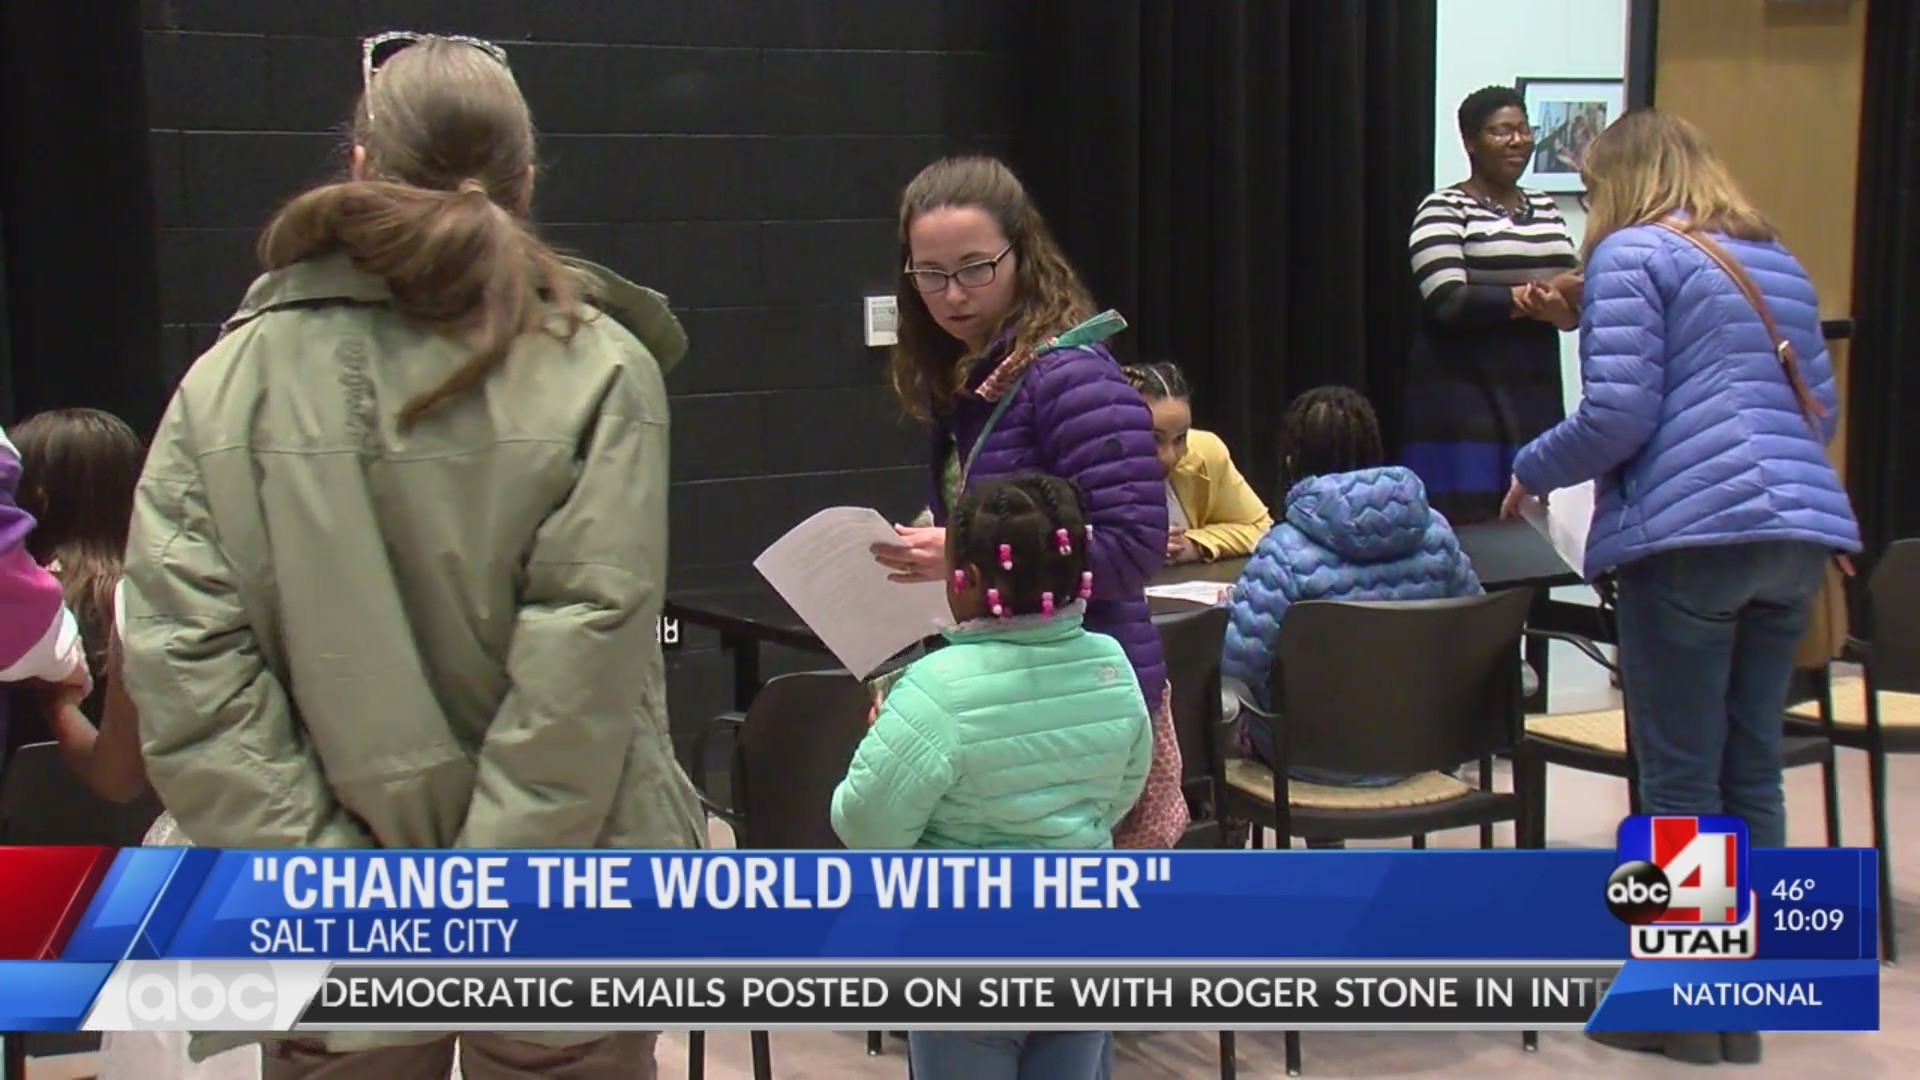 Change the World with Her